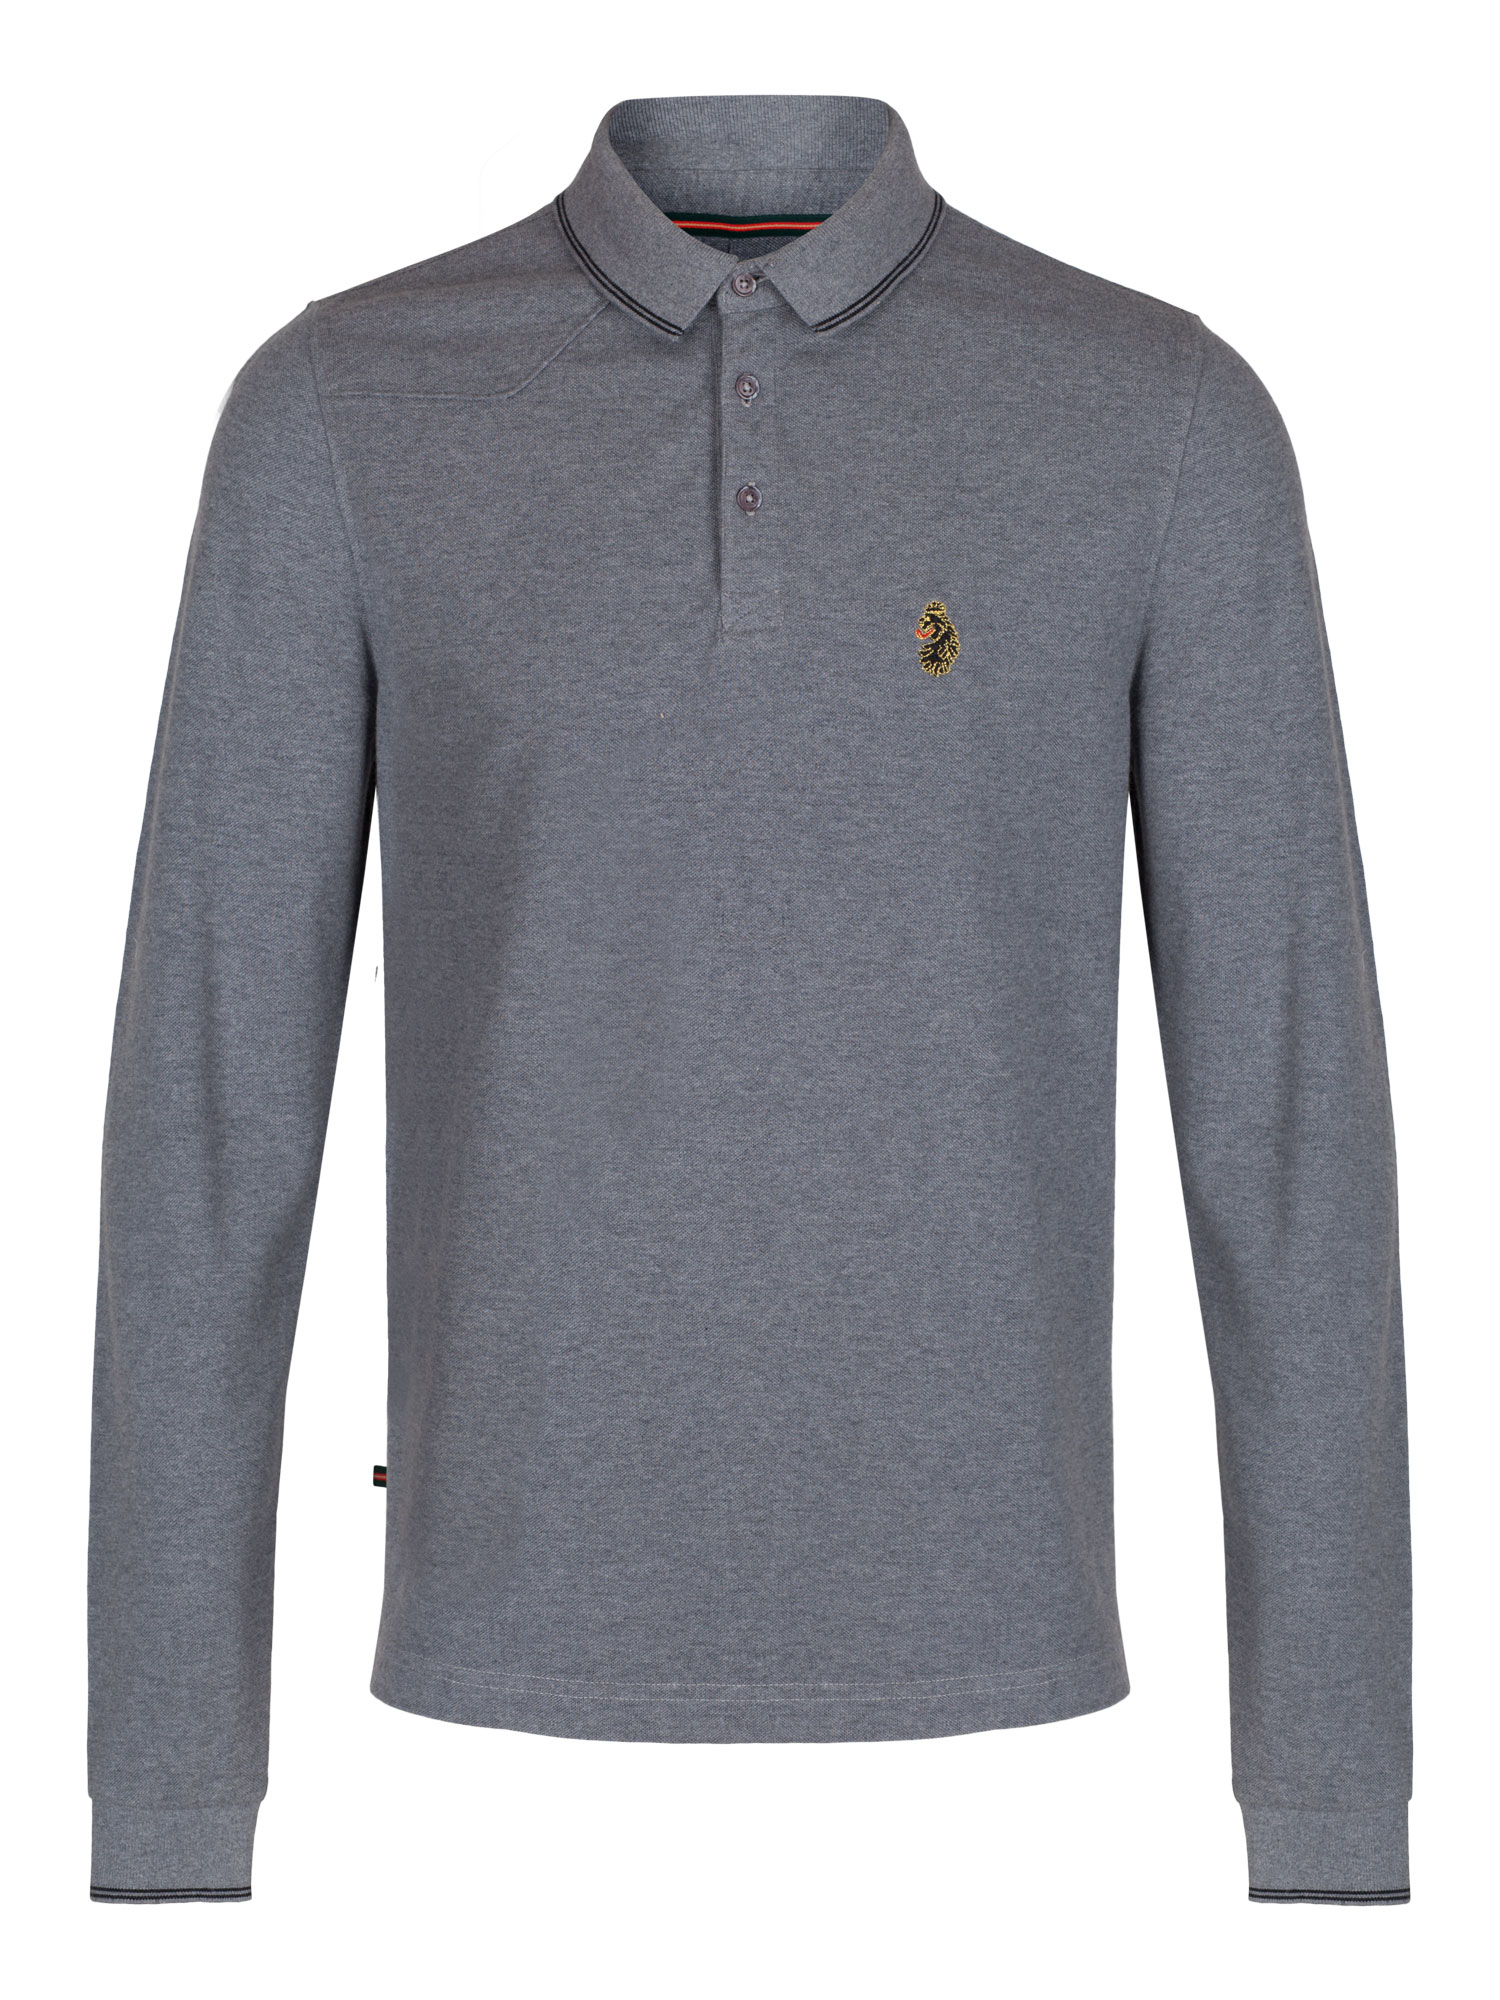 luke 1977 mens designer jude long sleeve lion polo shirt